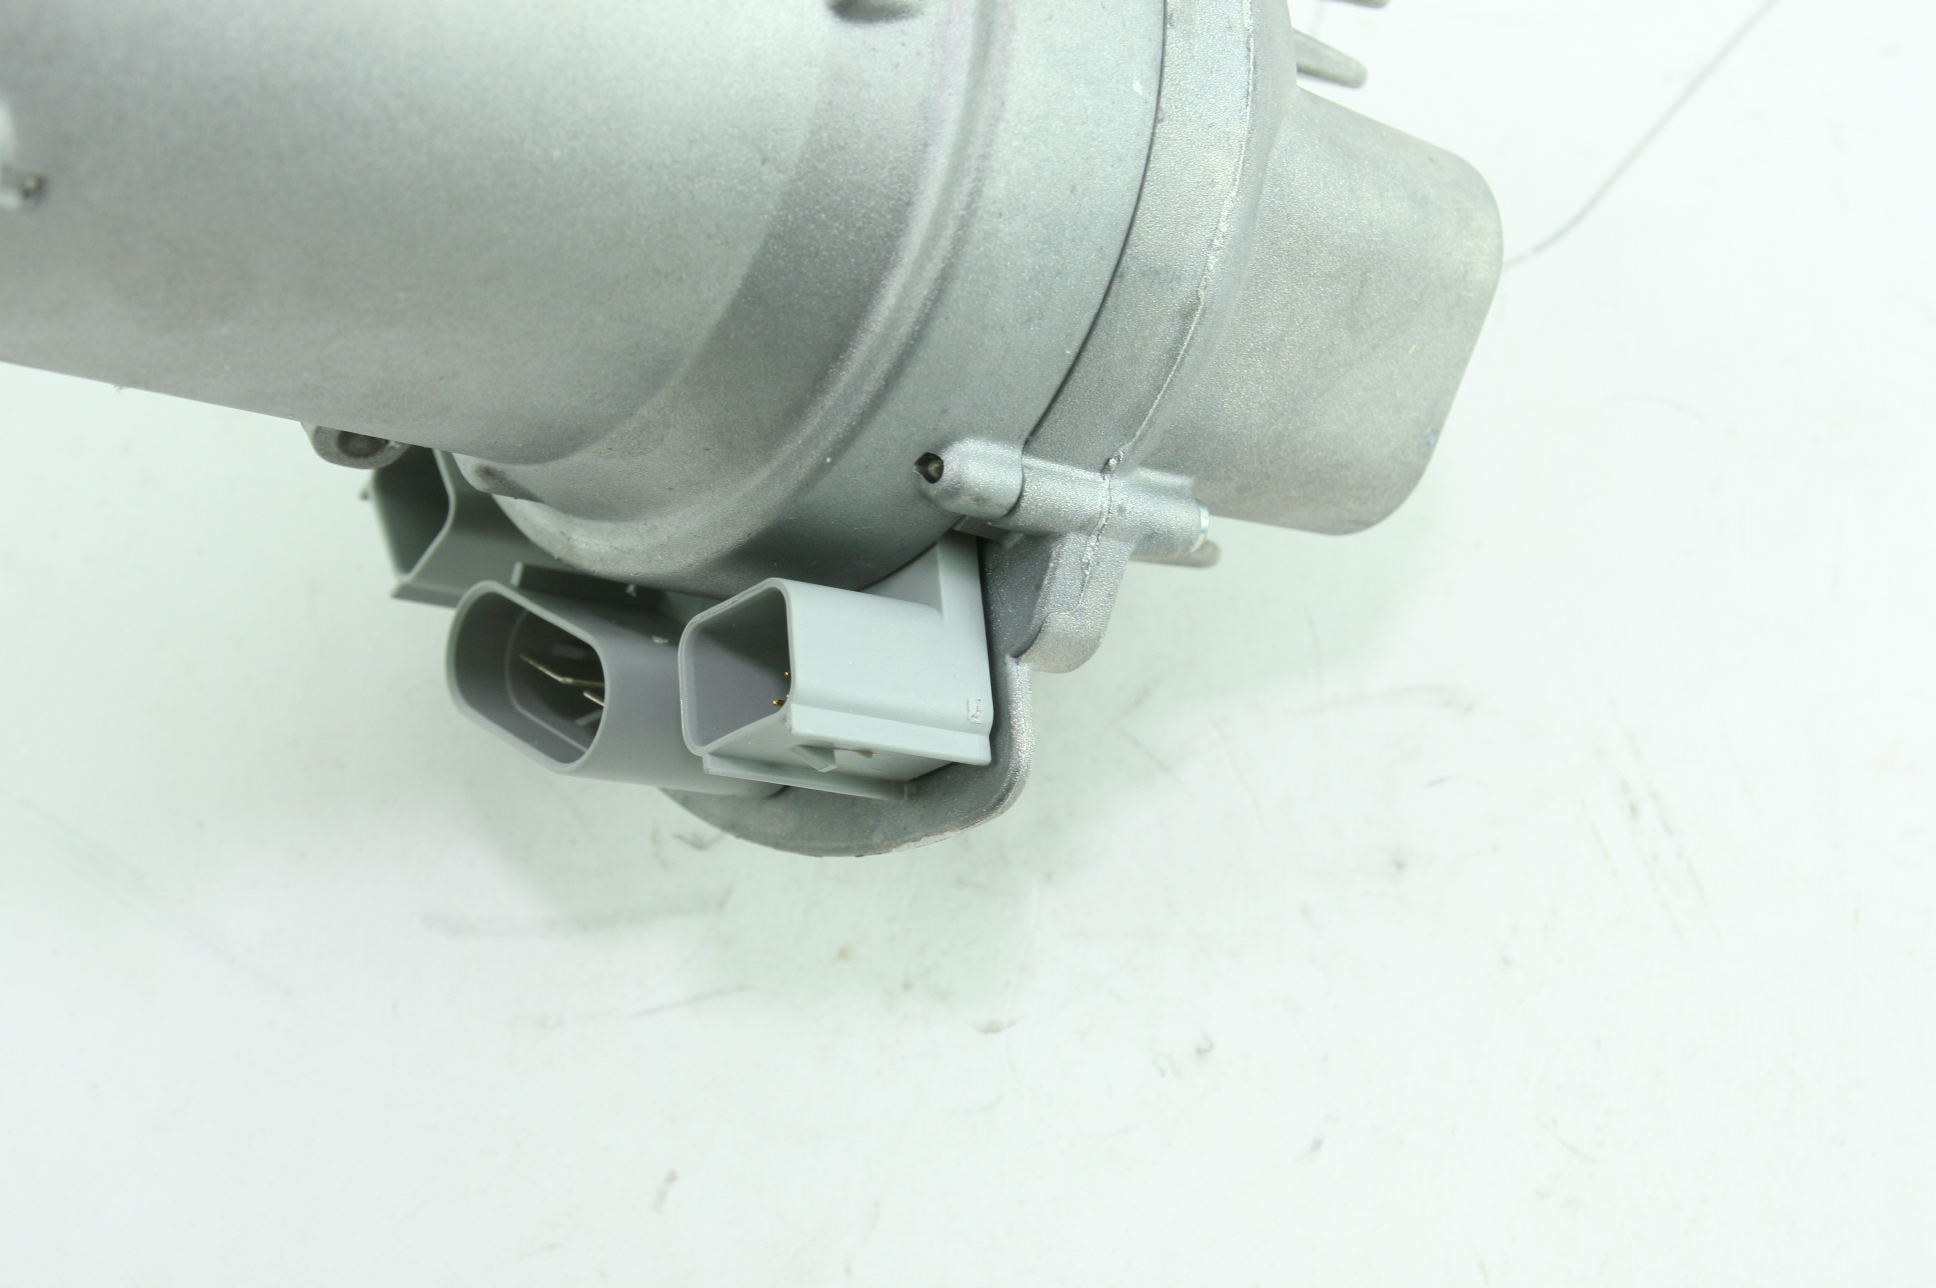 New OEM 23479299 Genuine GM Steering Gear Electric Power Steering Motor NIP - image 7